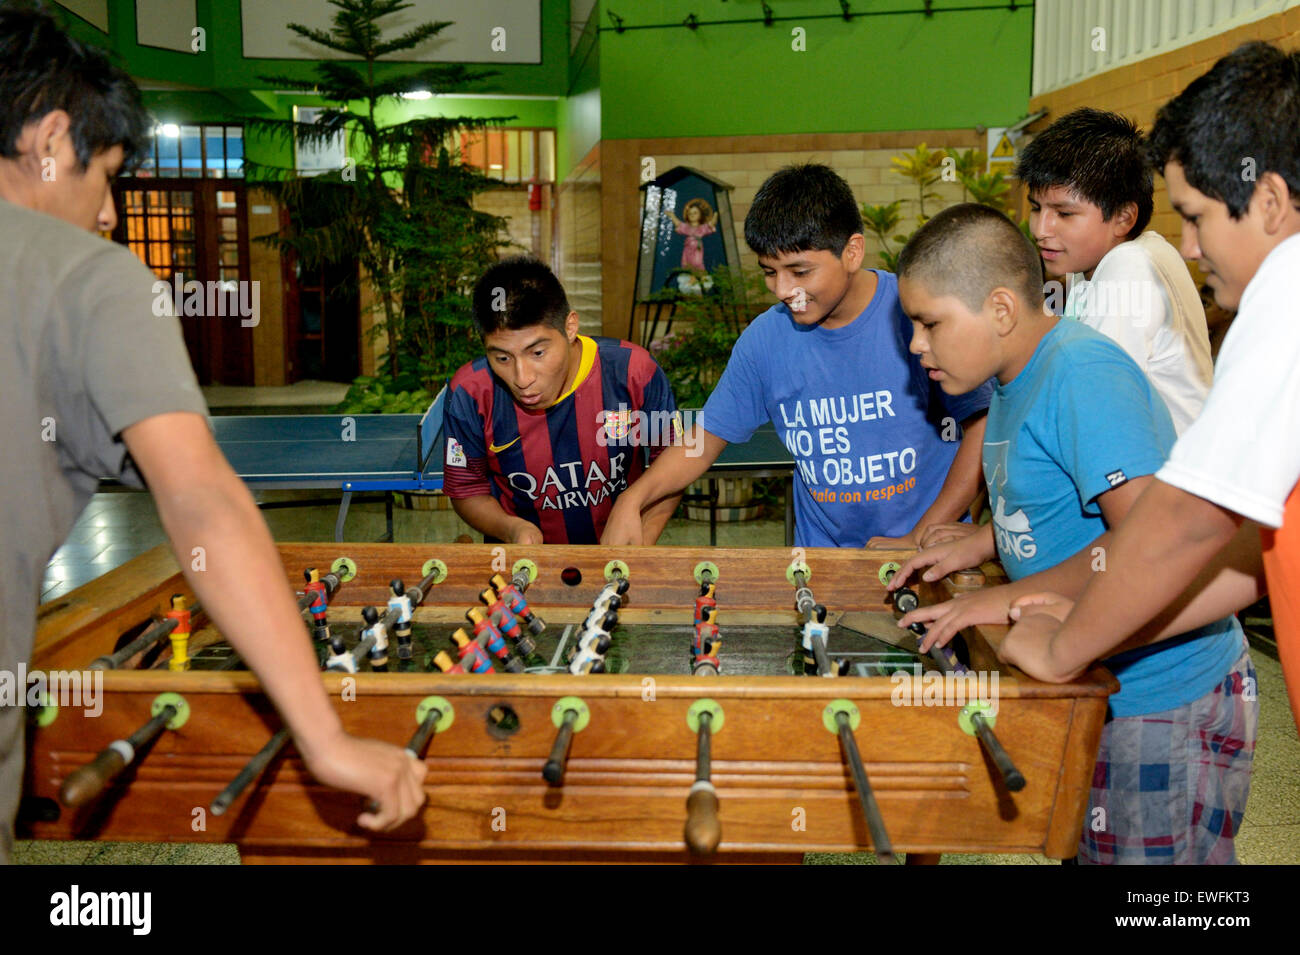 Teenagers playing foosball table, Lima, Peru - Stock Image